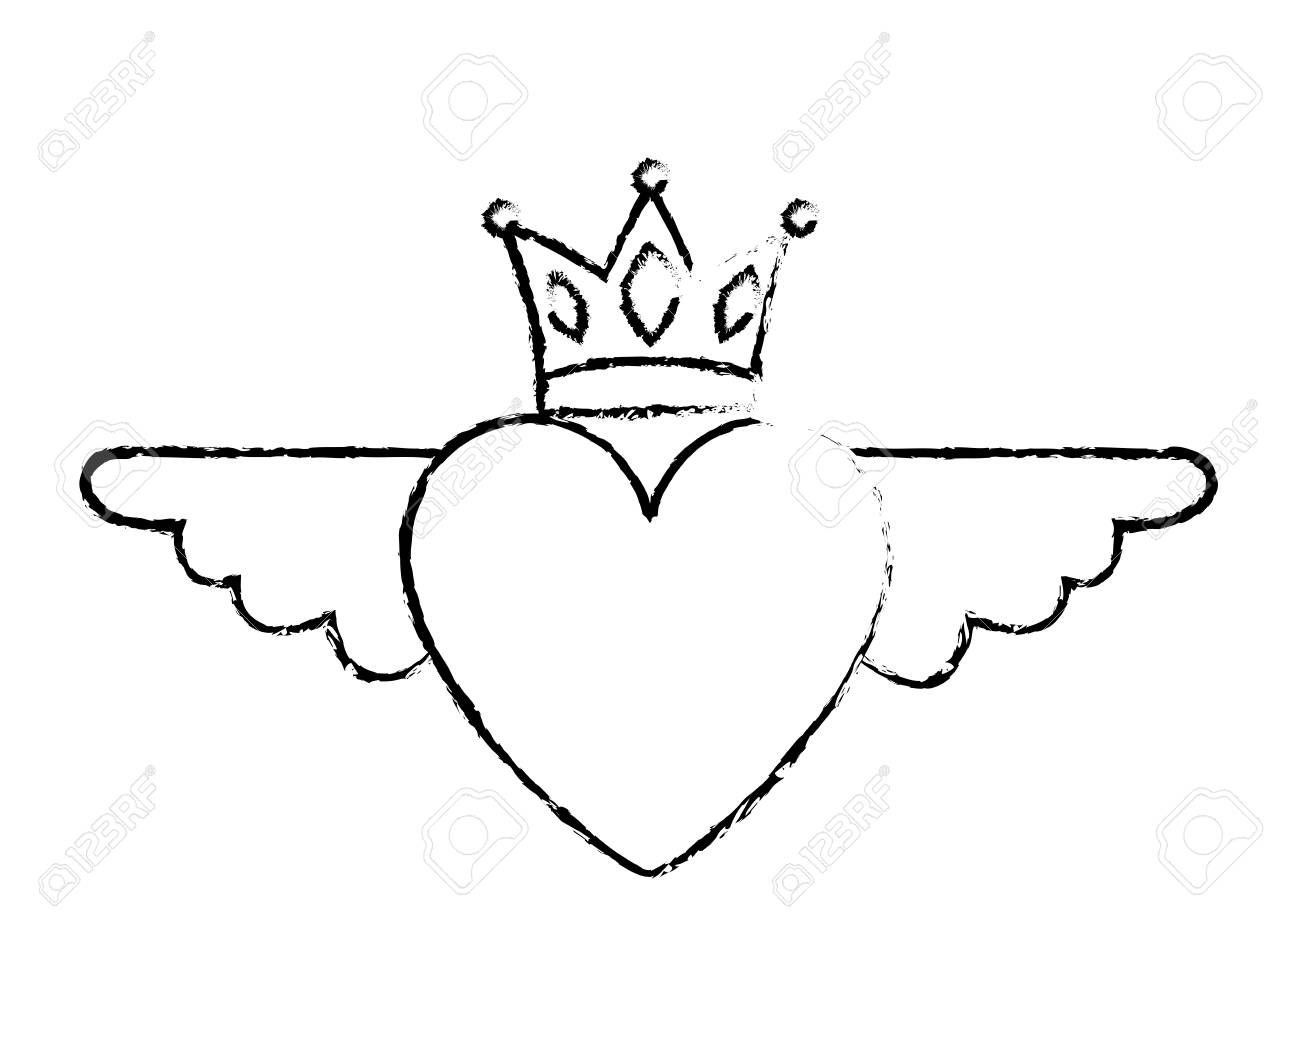 Heart In Love With Wings Crown Decoration Vector Illustration Royalty Free Cliparts Vectors And Stock Illustration Image 96860005